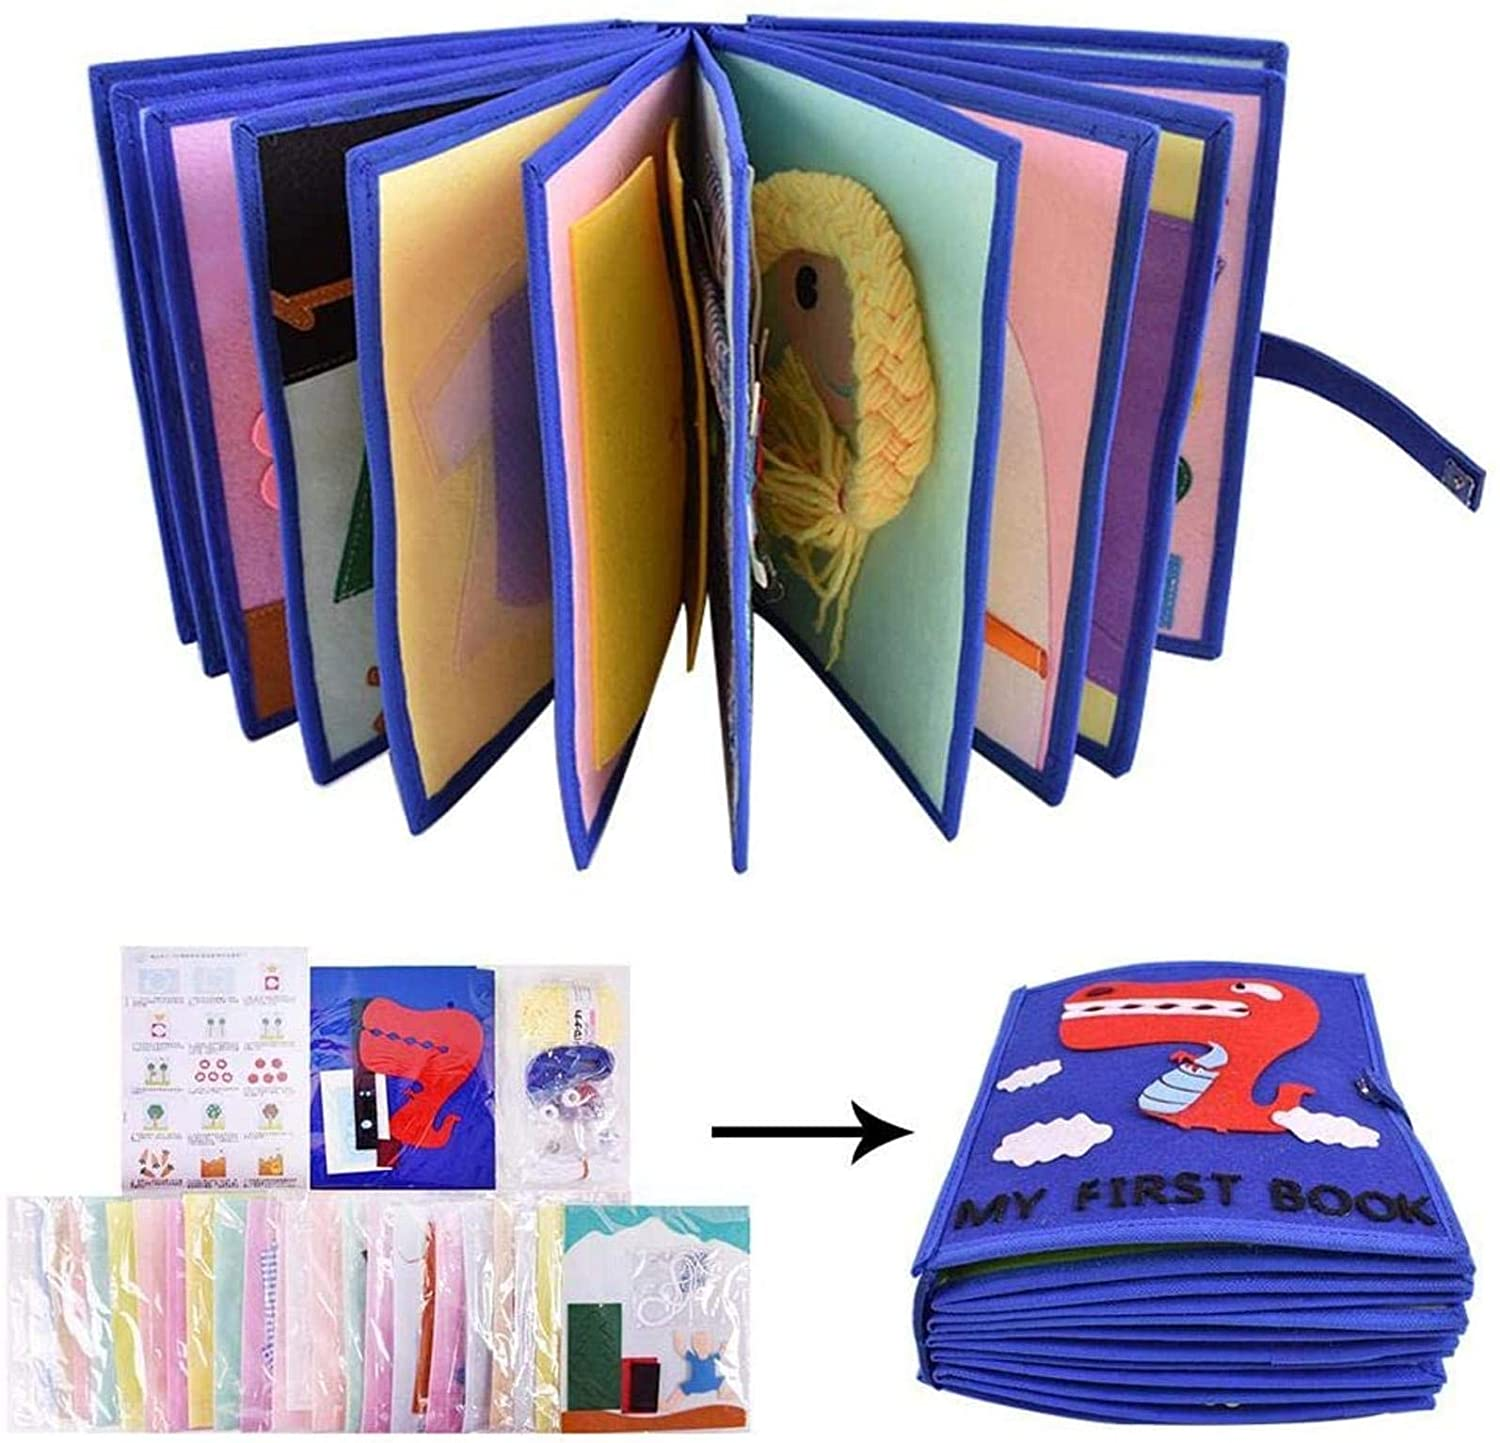 DIY Cloth Books Baby, My First Soft Cloth Book, Nonwoven Material Package Parent Child Cloth Book Set, Cut Free Cloth Book, Simulate Various Life Scenarios, 22 Pages